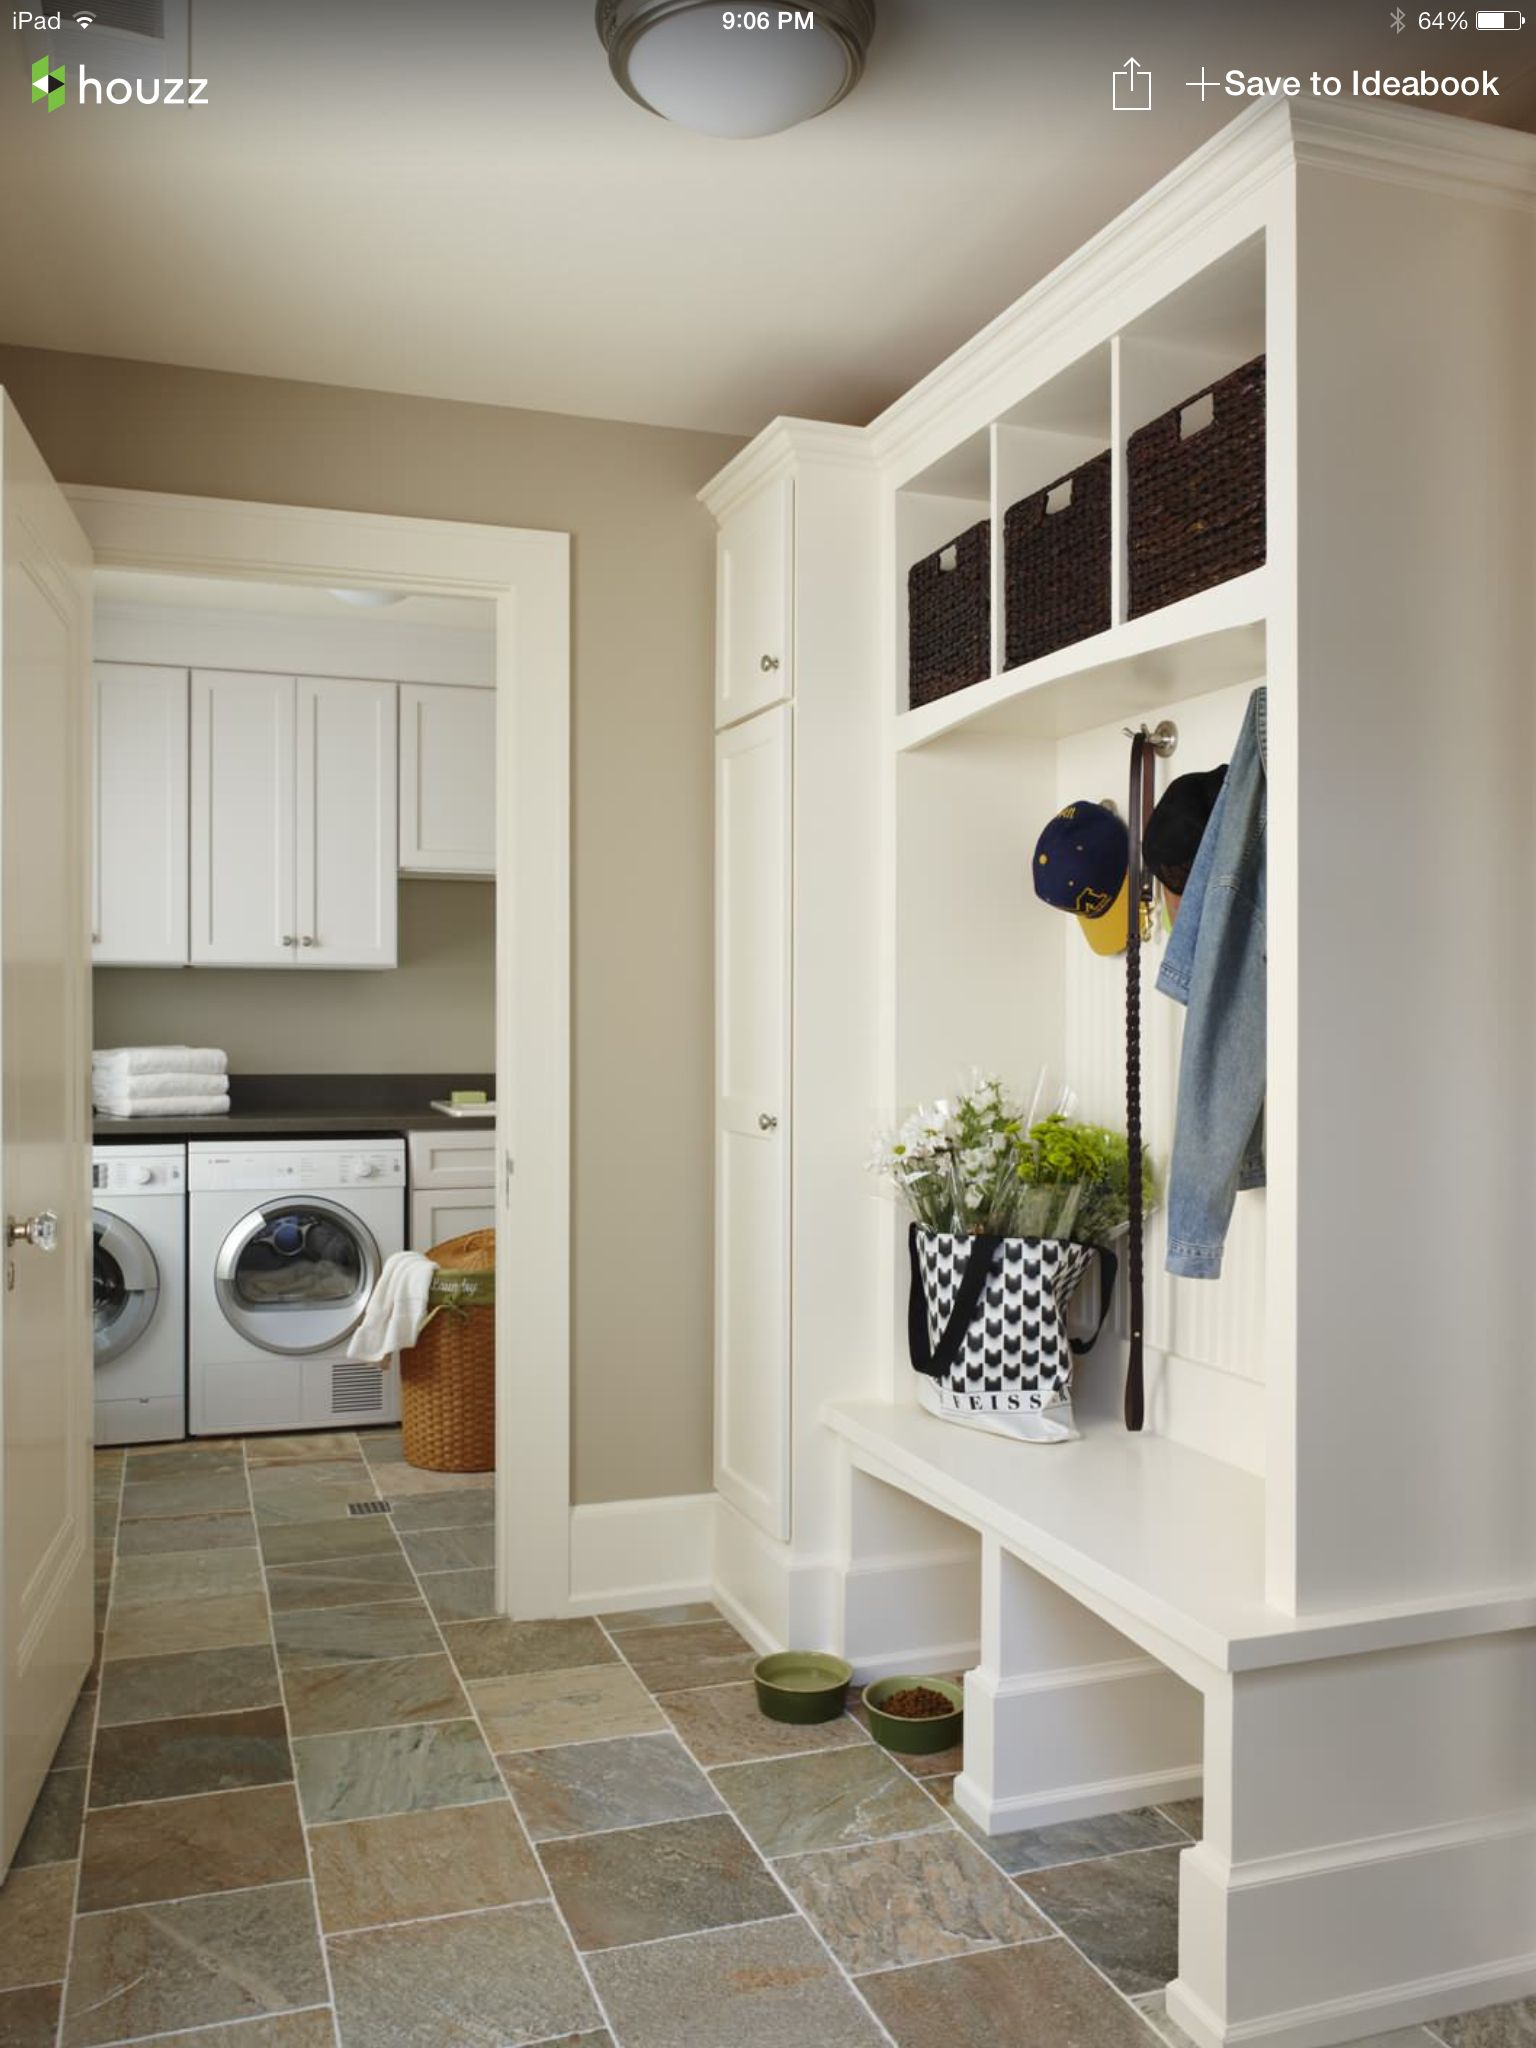 Mudroom Off The Garage And Door To Laundry Room Home Laundry Mud Room Mudroom Laundry Room